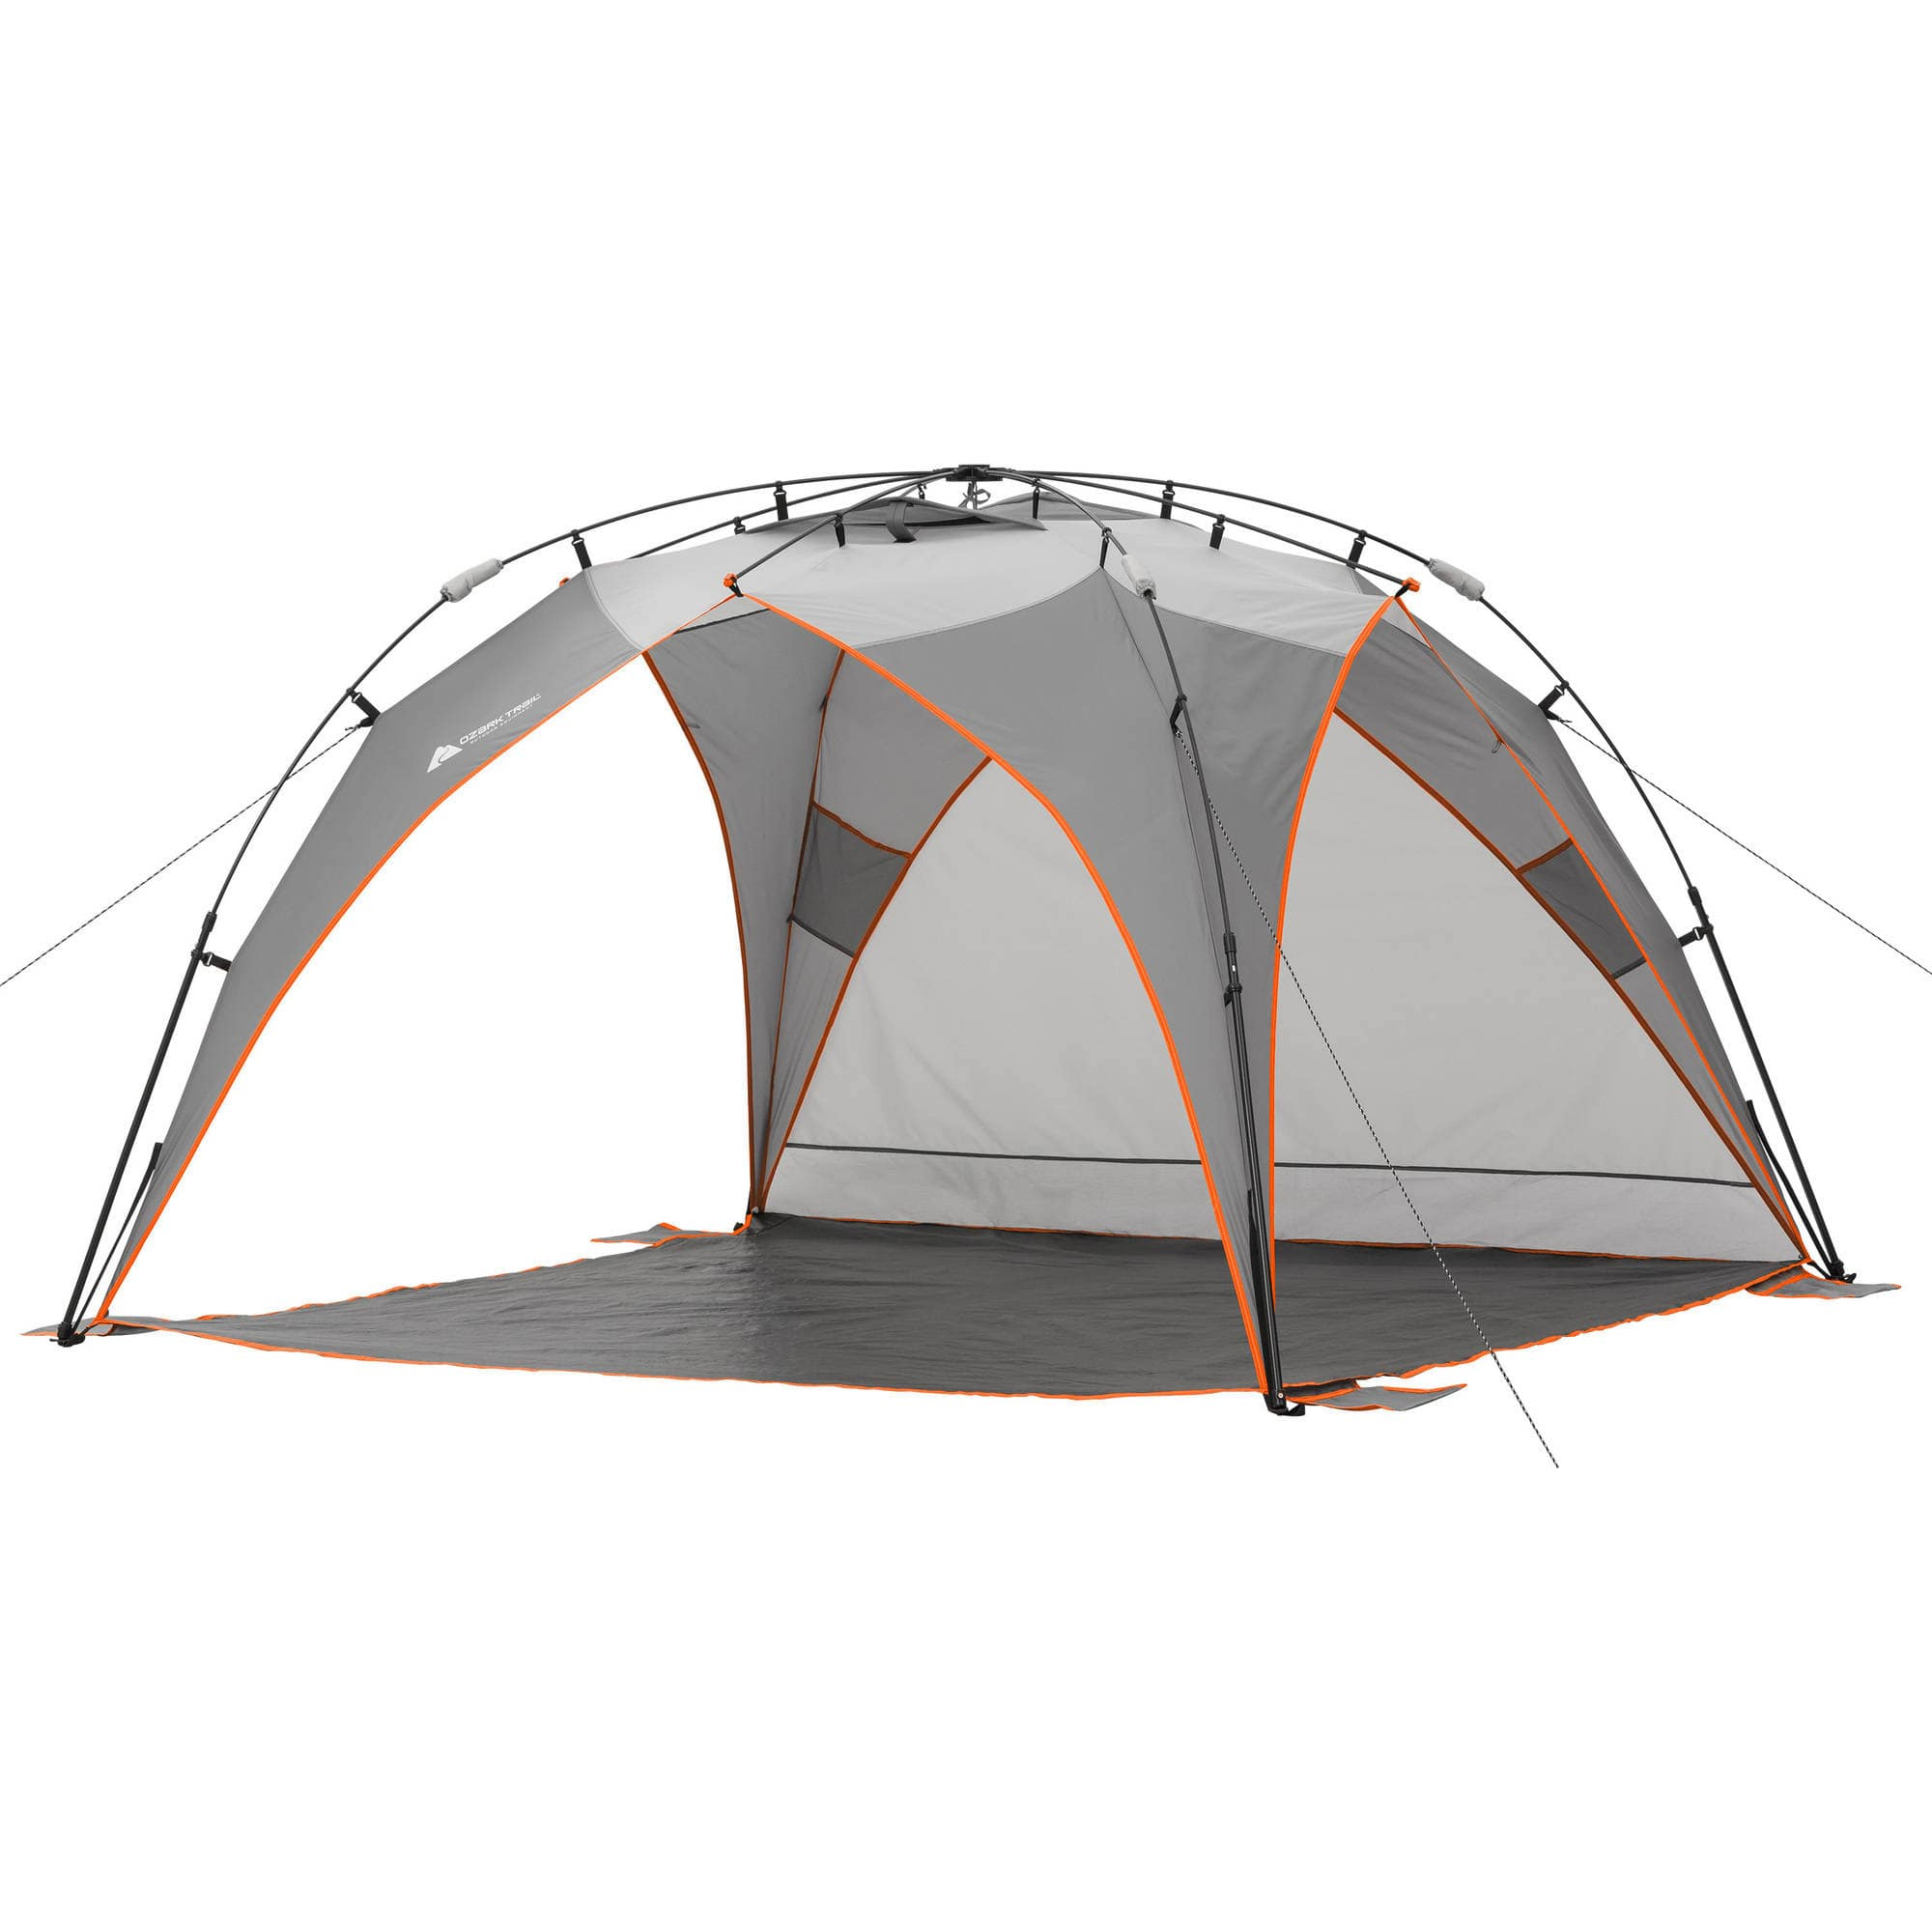 Ozark Trail 8' x 8' Instant Sun Shade (Gray or Blue) w/ FREE 2 DAY SHIPPING $35 OR $15 In-Store(YMMV)